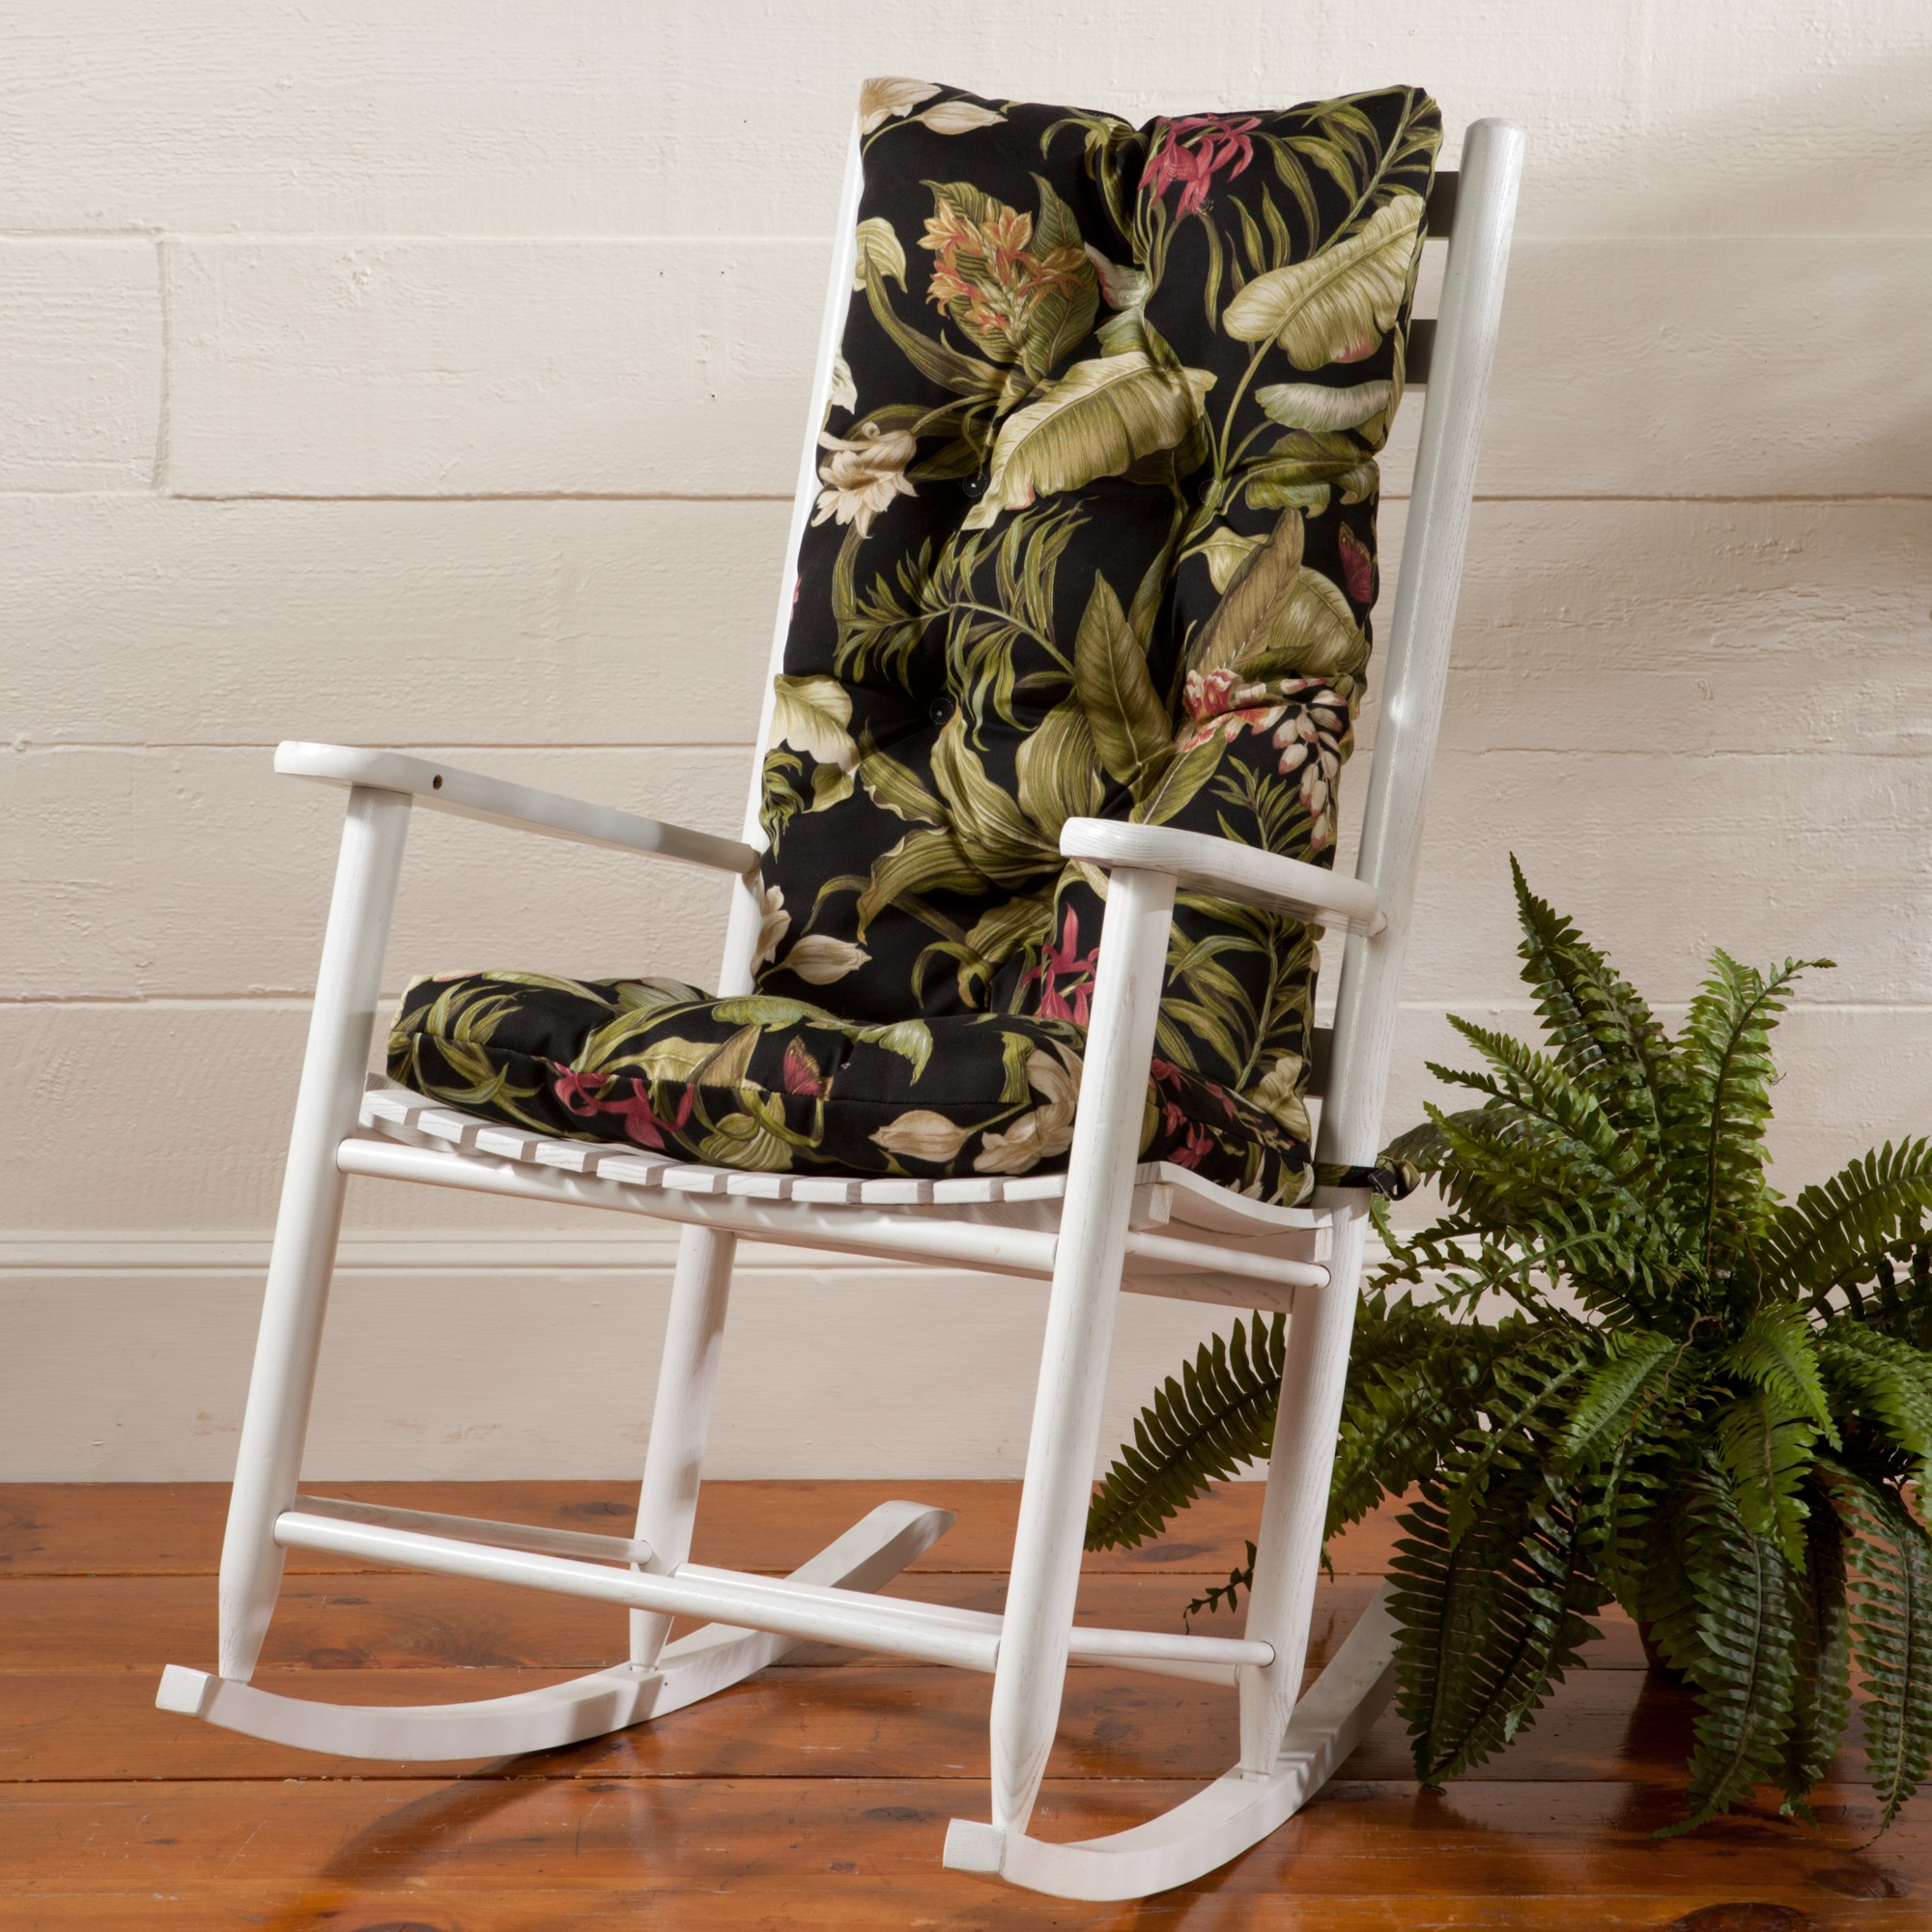 Cushion Rocking Chair | Rocking Chair Cushion | Rocker Chair Cushions